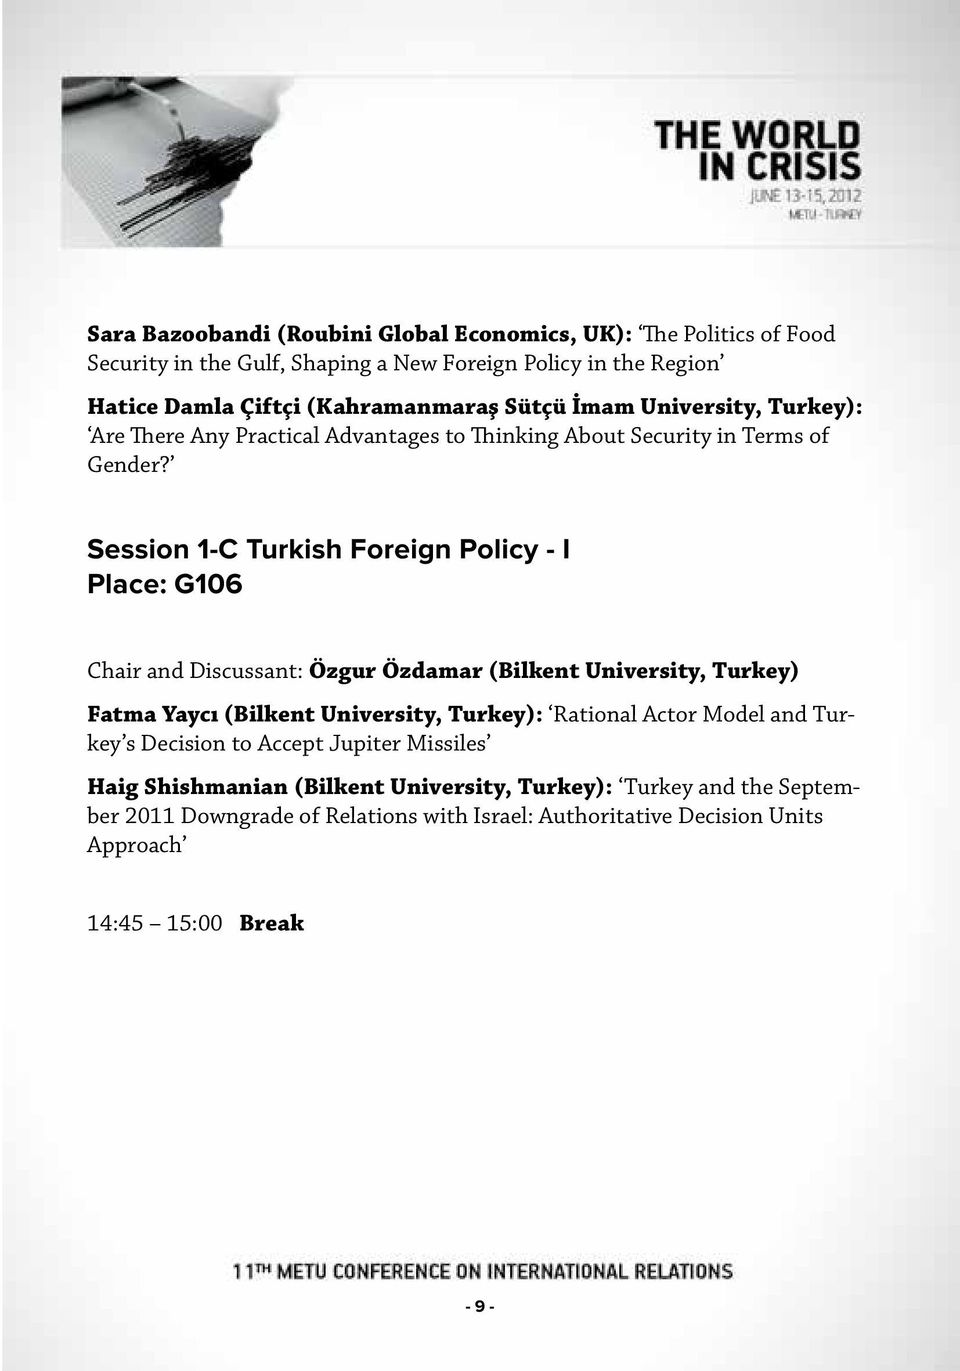 Session 1-C Turkish Foreign Policy - I Place: G106 Chair and Discussant: Özgur Özdamar (Bilkent University, Turkey) Fatma Yaycı (Bilkent University, Turkey): Rational